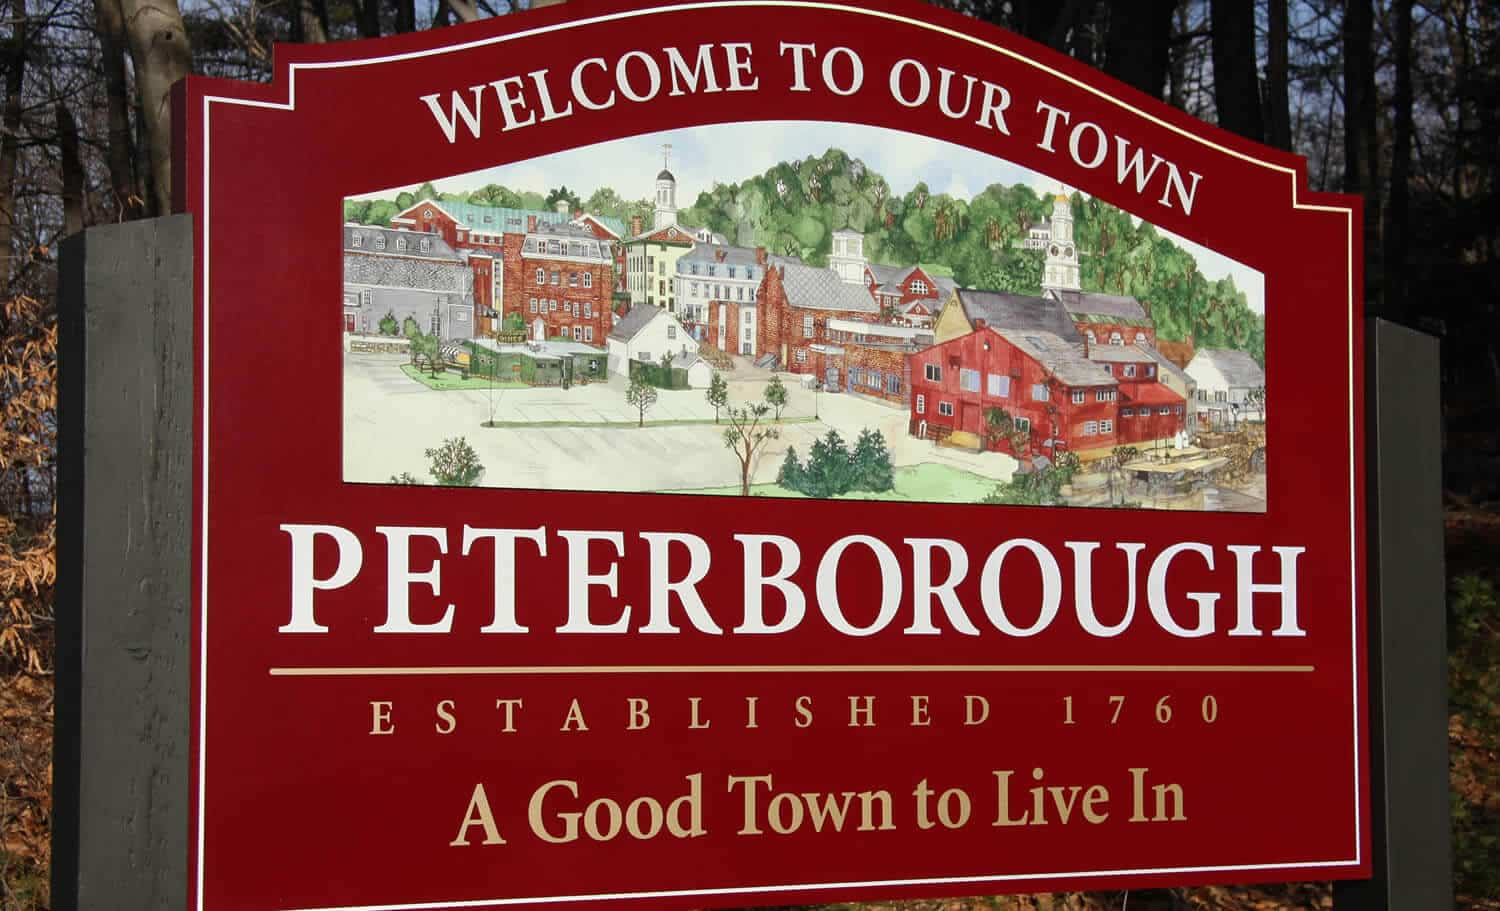 A red sign with a watercolor image of downtown Peterborough greets drivers as they enter town lines